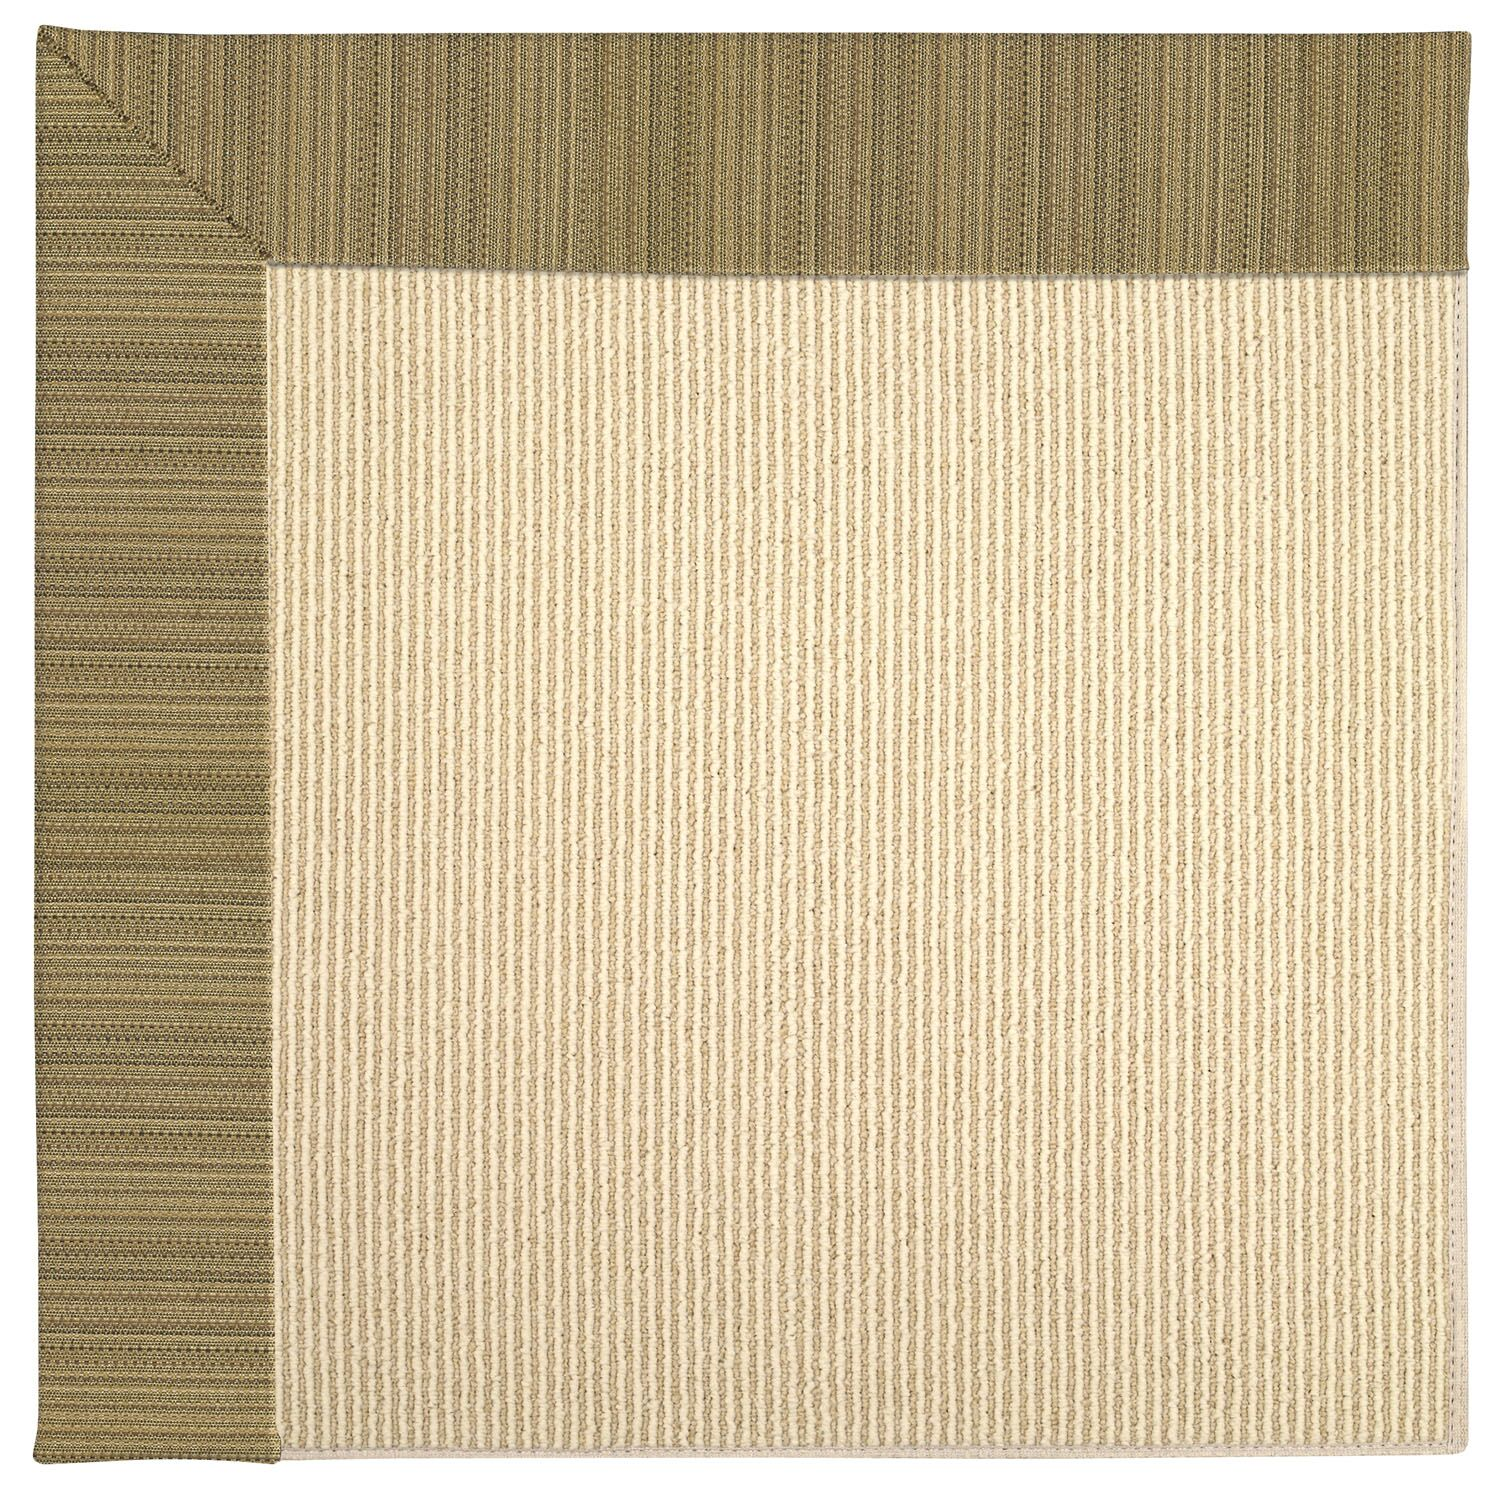 Lisle Machine Tufted Green/Brown Indoor/Outdoor Area Rug Rug Size: Square 8'